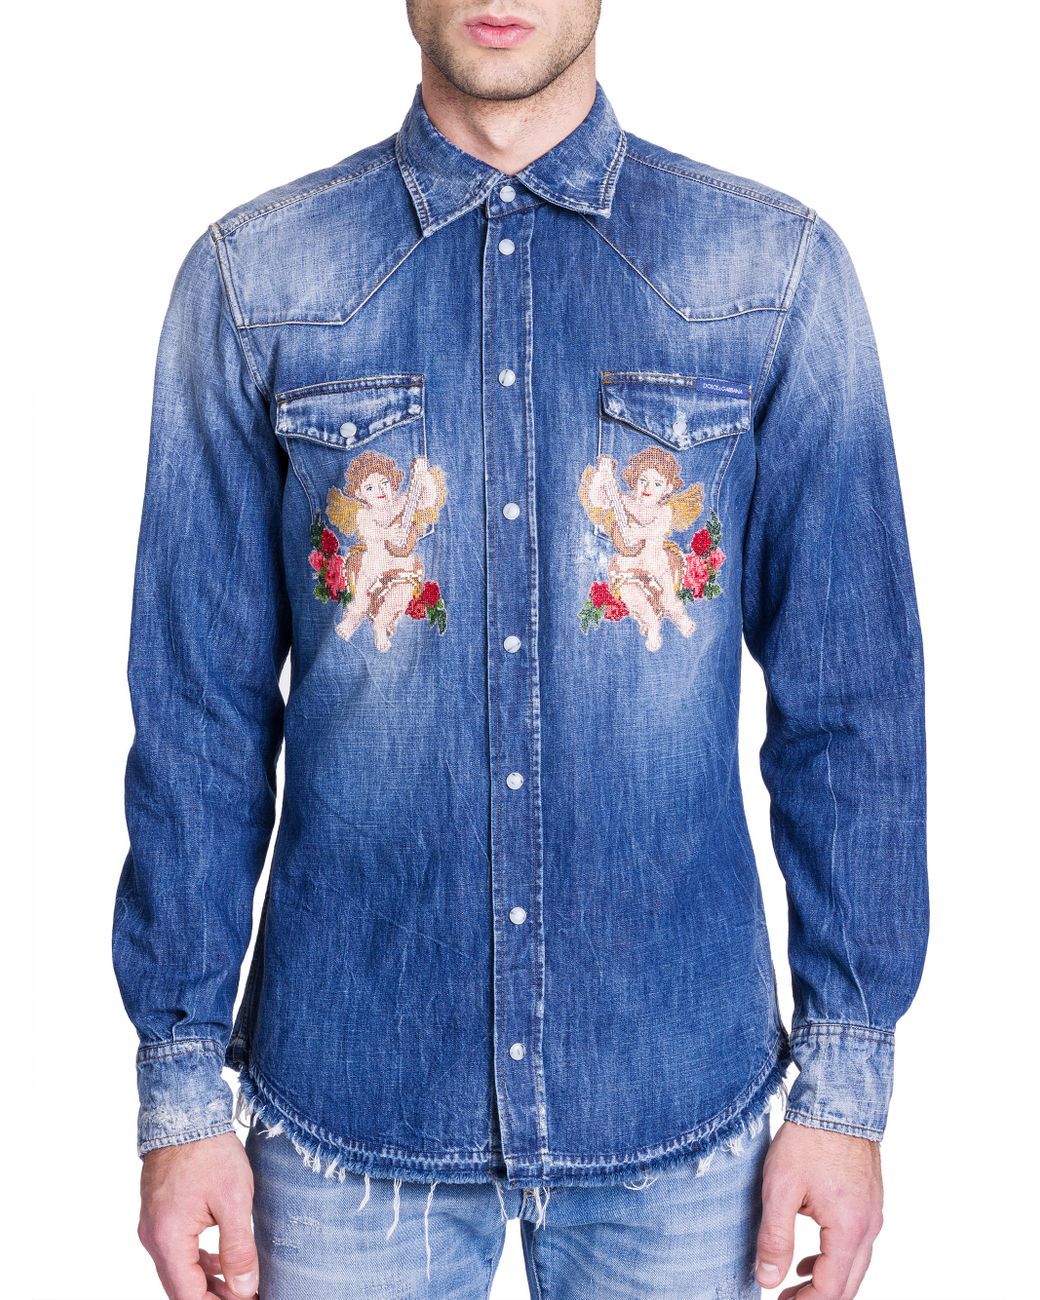 dolce-gabbana-mens-denim-cherub-shirt